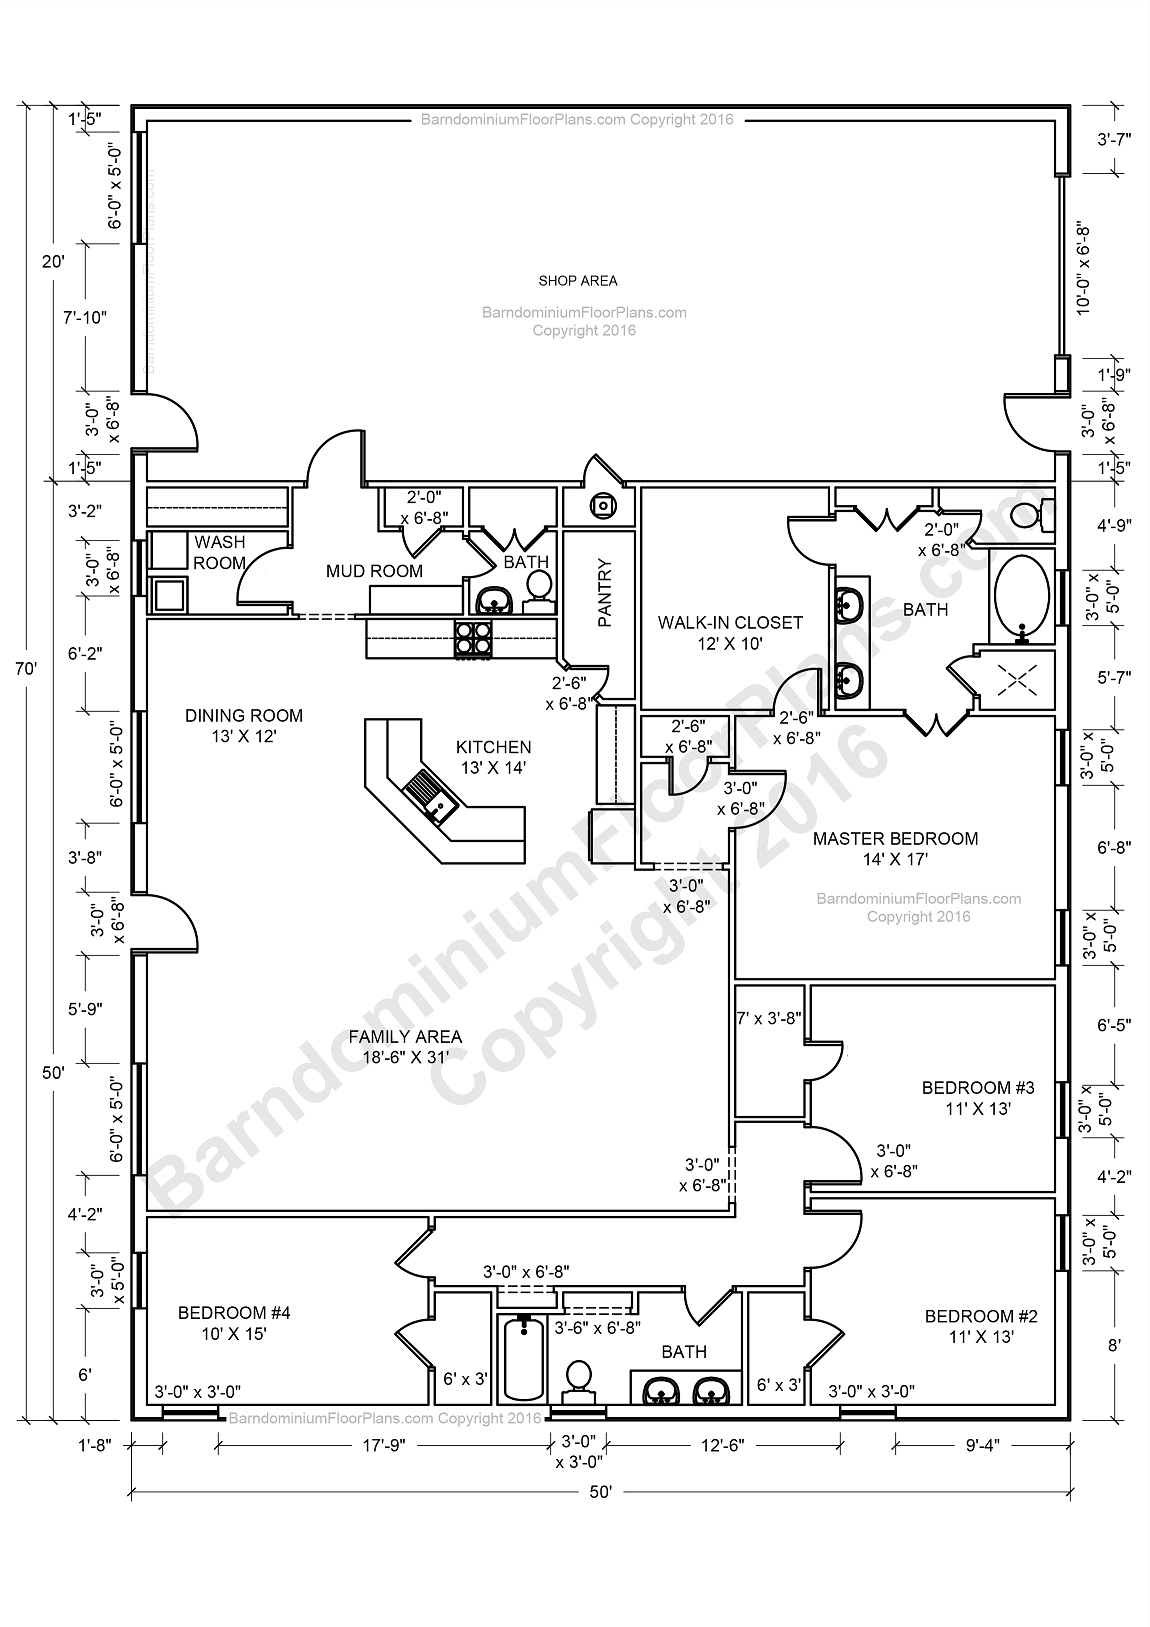 Beast metal building barndominium floor plans and design for Metal shop plans